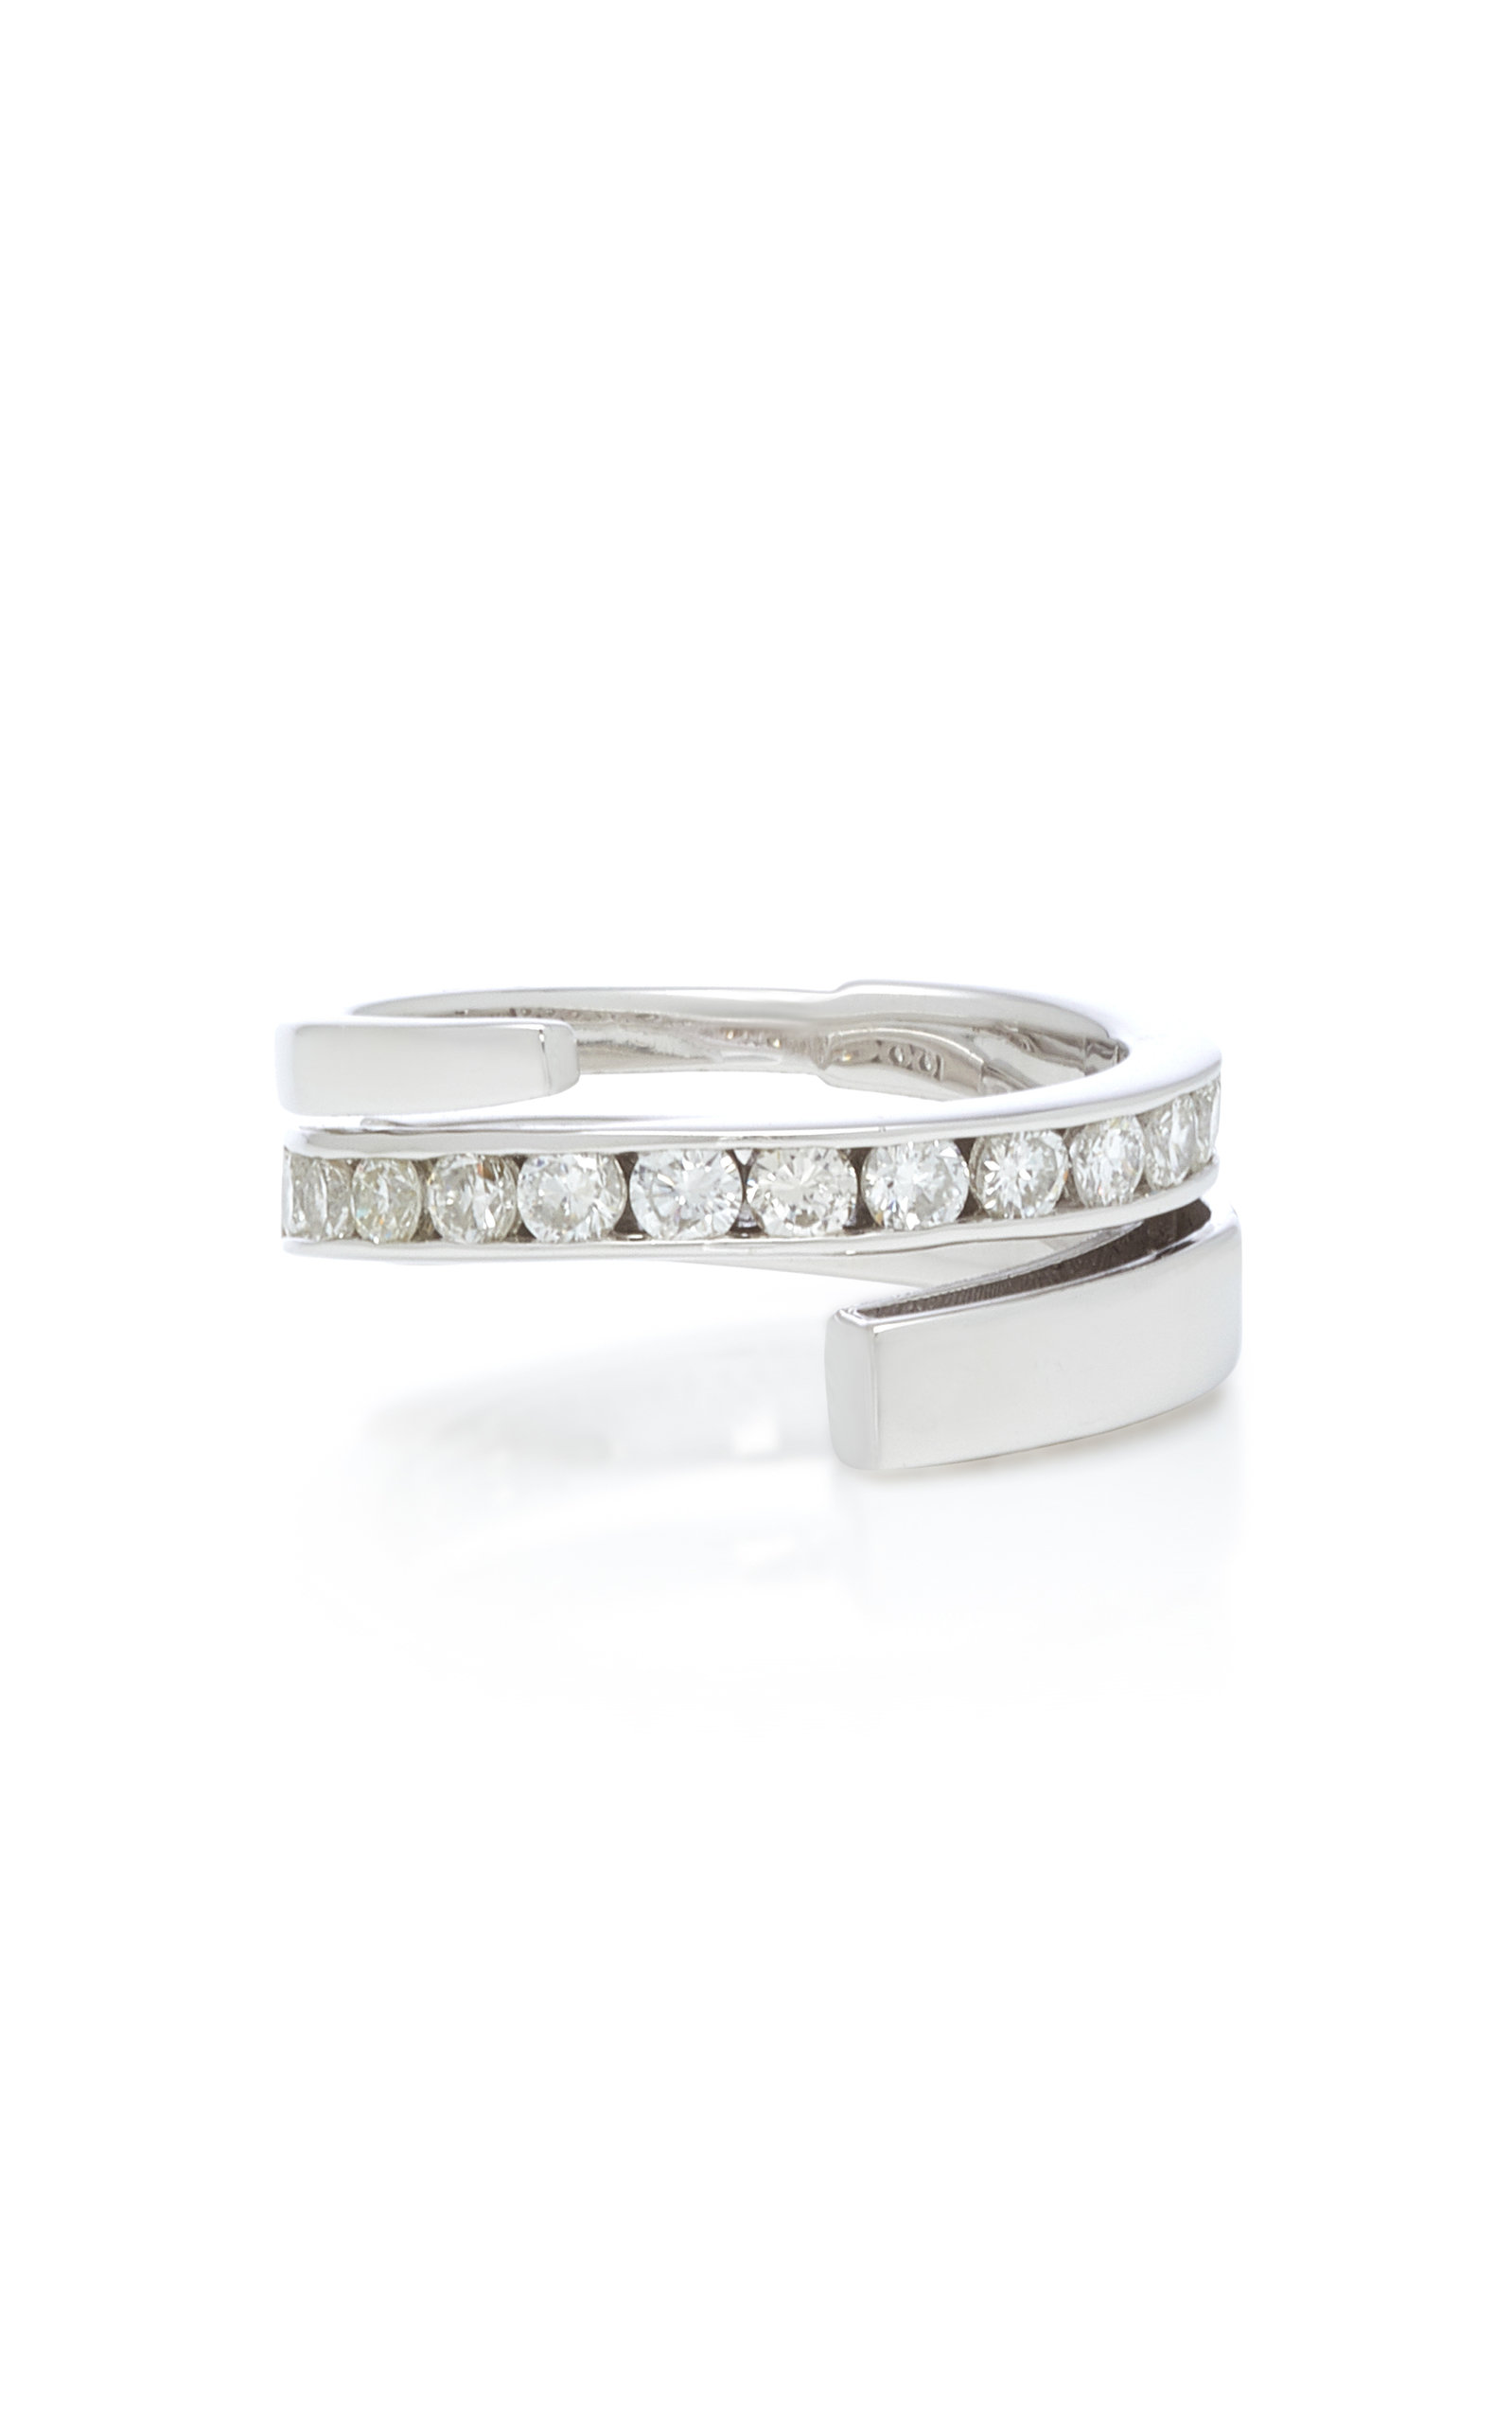 LYNN BAN JEWELRY Sterling Silver Diamond Coil Ring in White